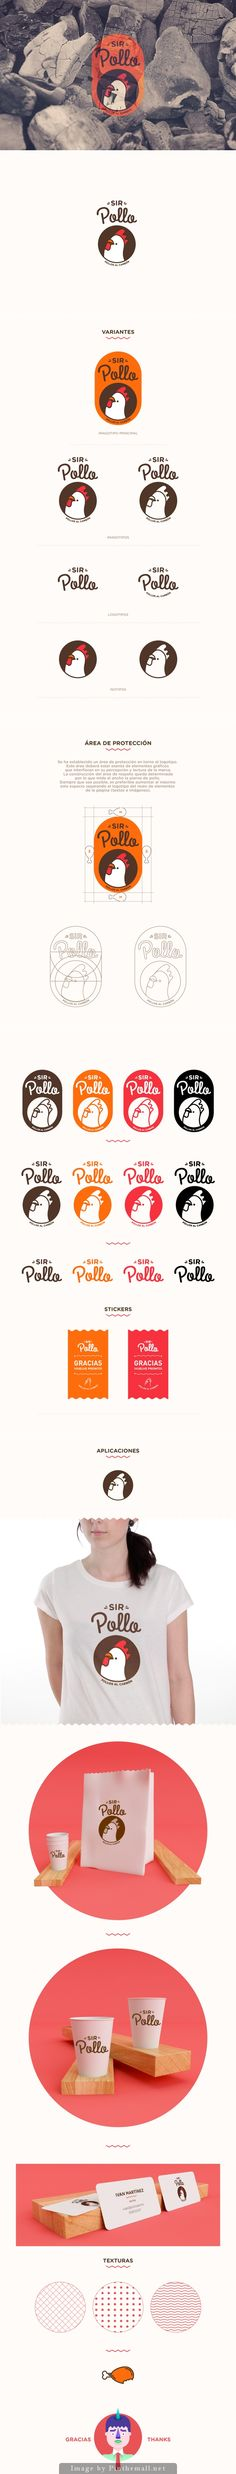 SIR POLLO by AARON MARTINEZ, via Behance